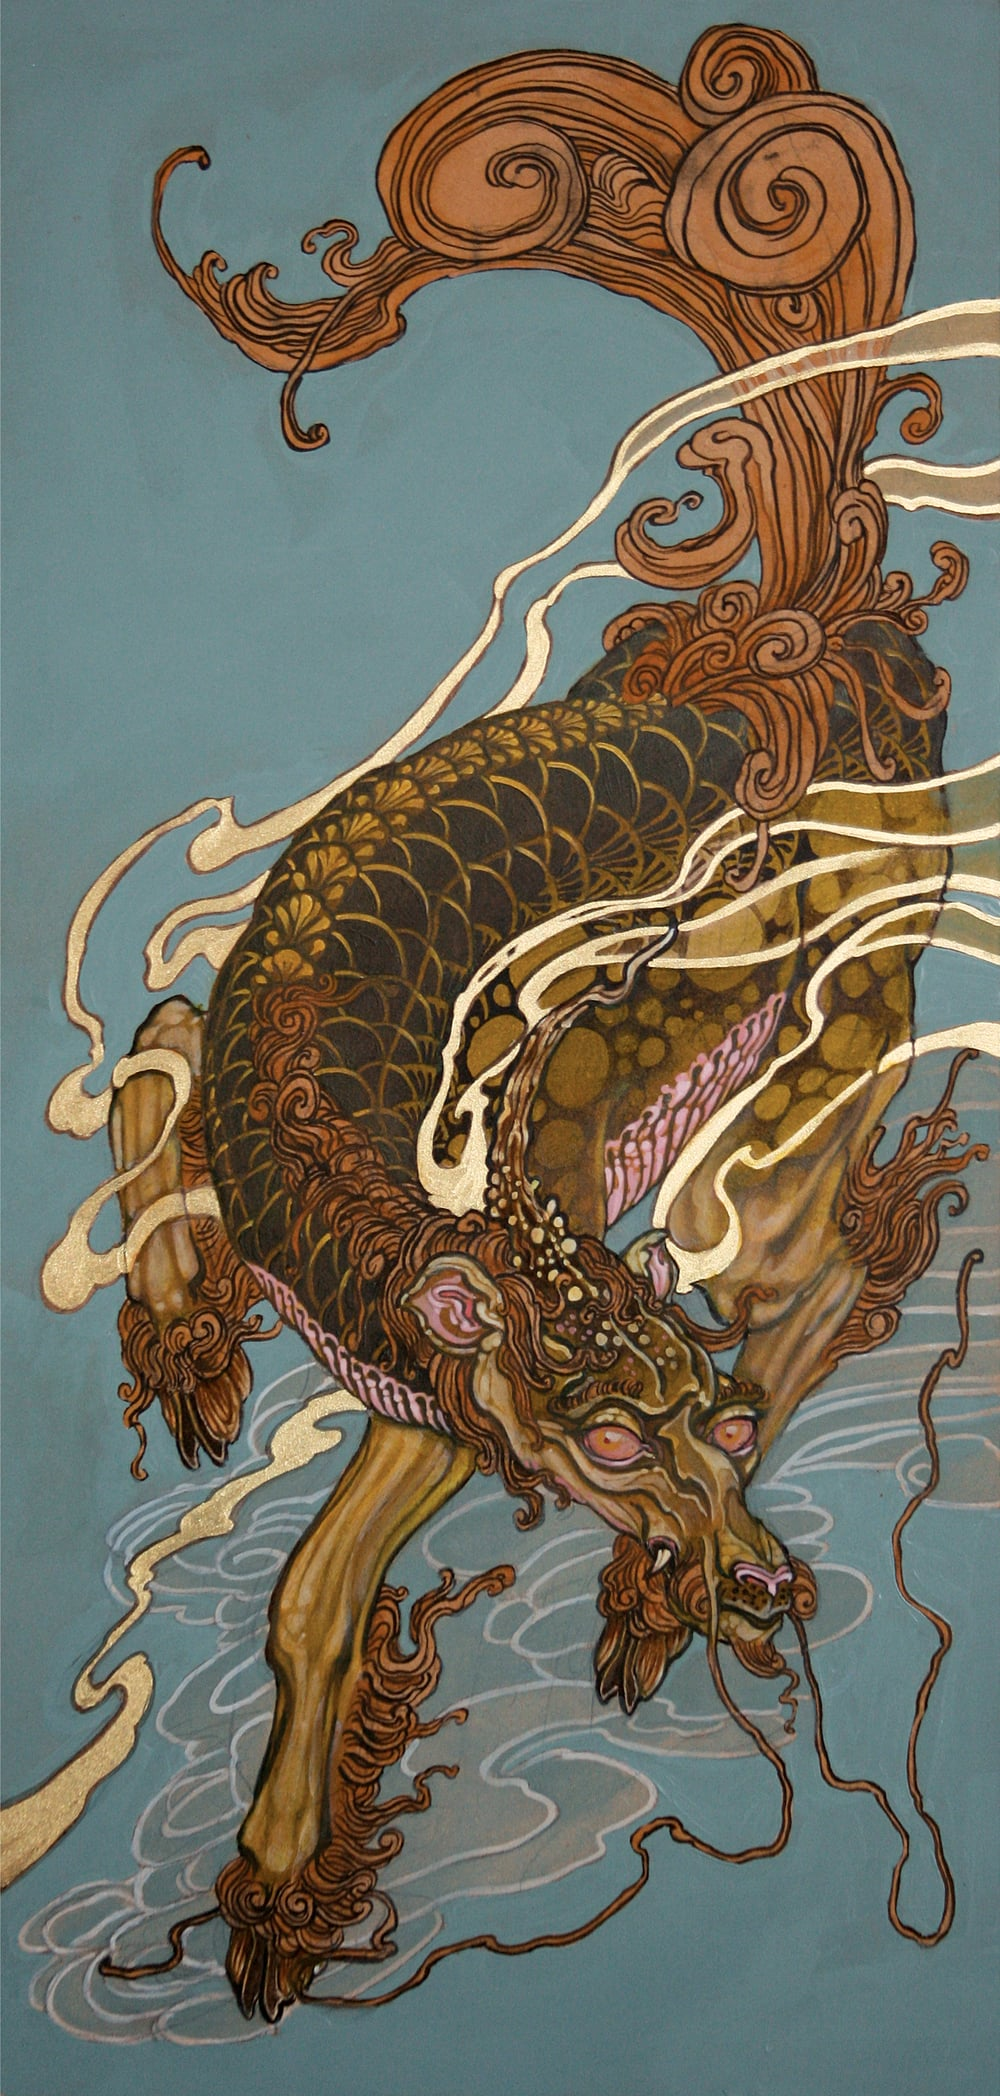 Untitled (Kirin) . 2010 - acrylic on board. 2' x 1'.